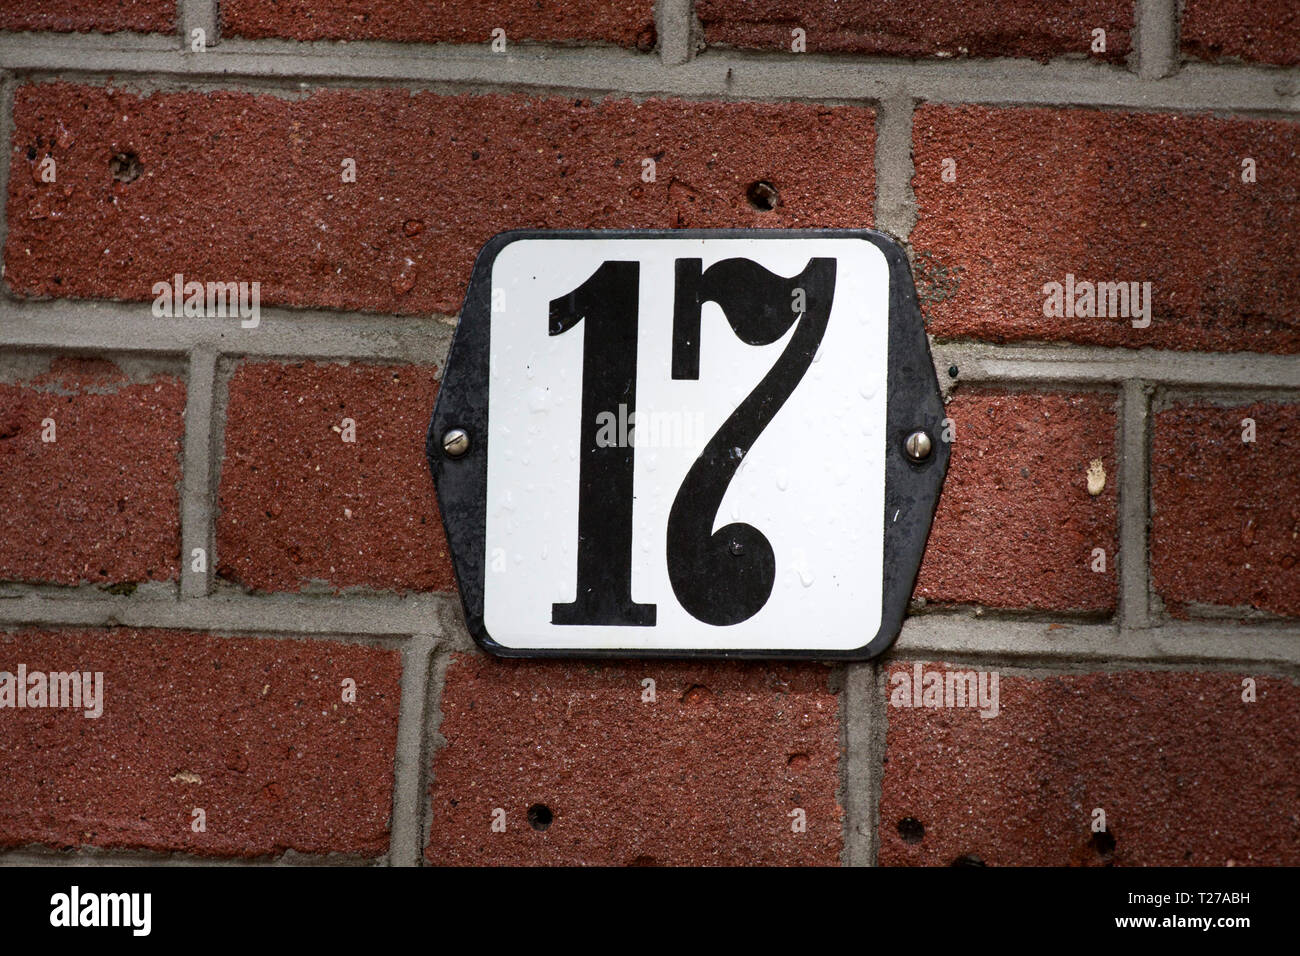 House number plate 17 screwed onto a brick wall - Stock Image